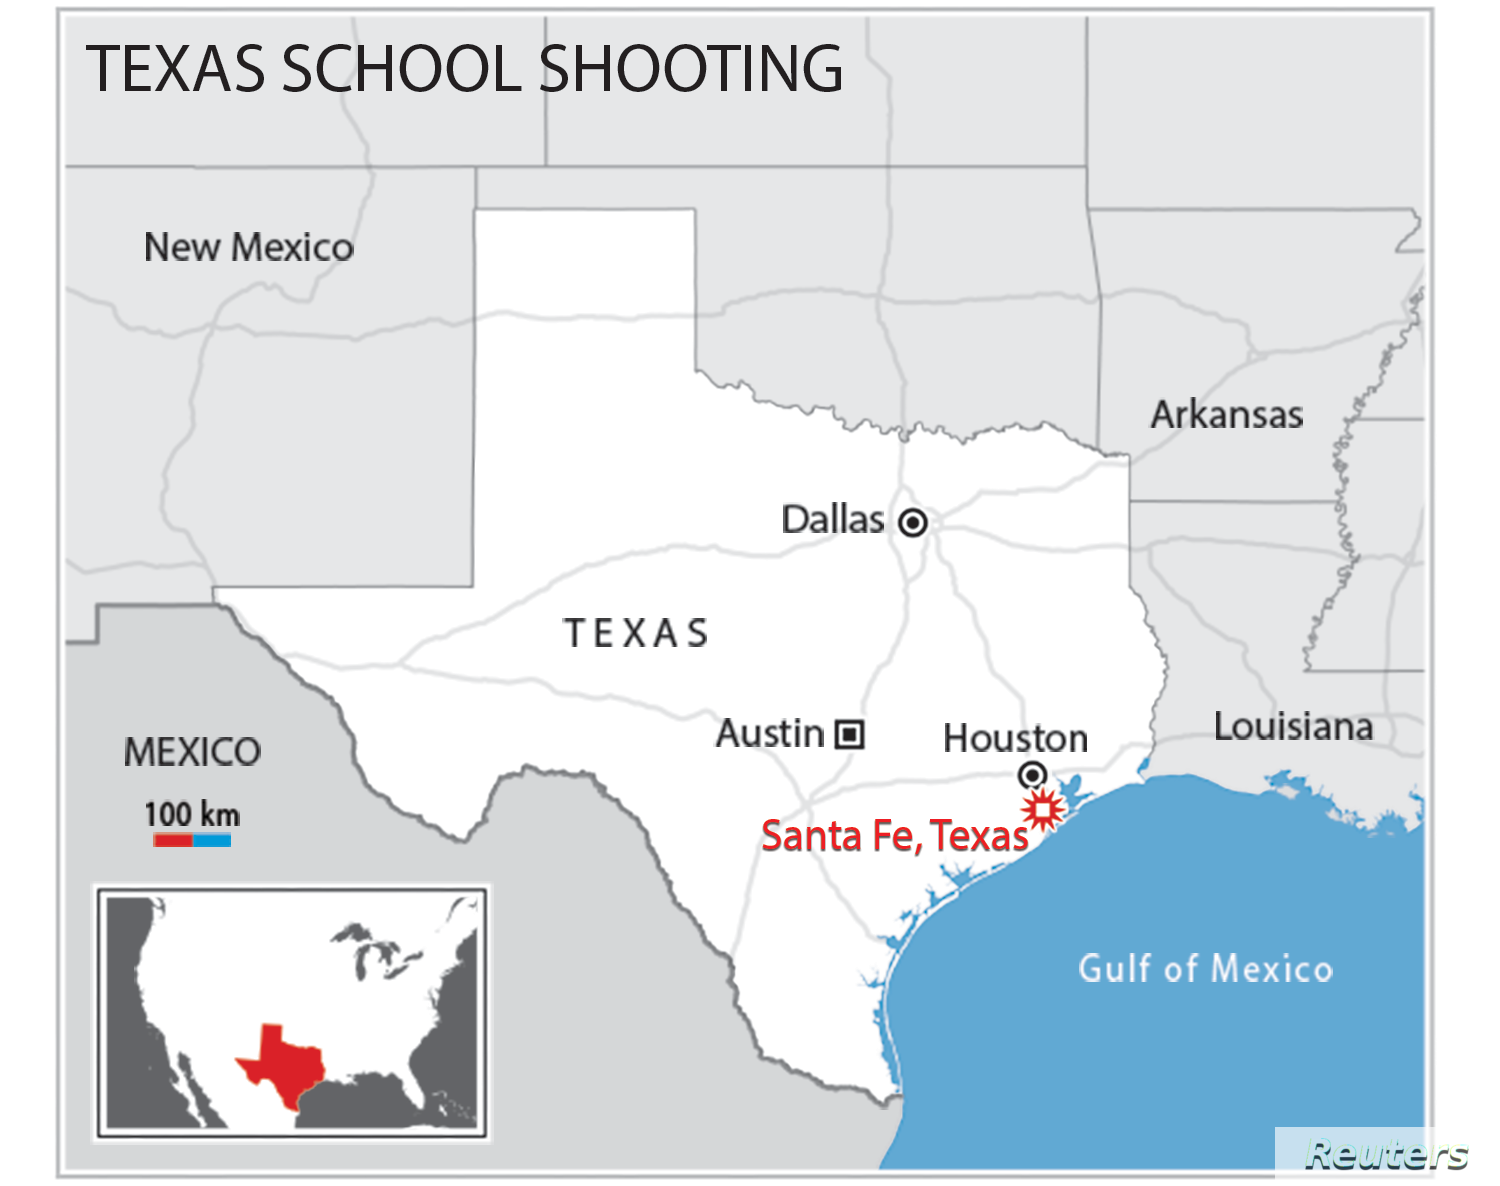 10 Killed in Texas Shooting | Voice of America - English on united states map, chaco canyon new mexico map, carlsbad new mexico map, ghost ranch new mexico map, los angeles california map, st louis missouri map, shiprock new mexico map, portland oregon map, alamogordo new mexico map, tesuque new mexico map, new mexico state map, laguna new mexico map, albuquerque new mexico map, helena montana map, new mexico travel map, las vegas new mexico map, rocky mountains new mexico map, belen new mexico map, route 66 new mexico map,